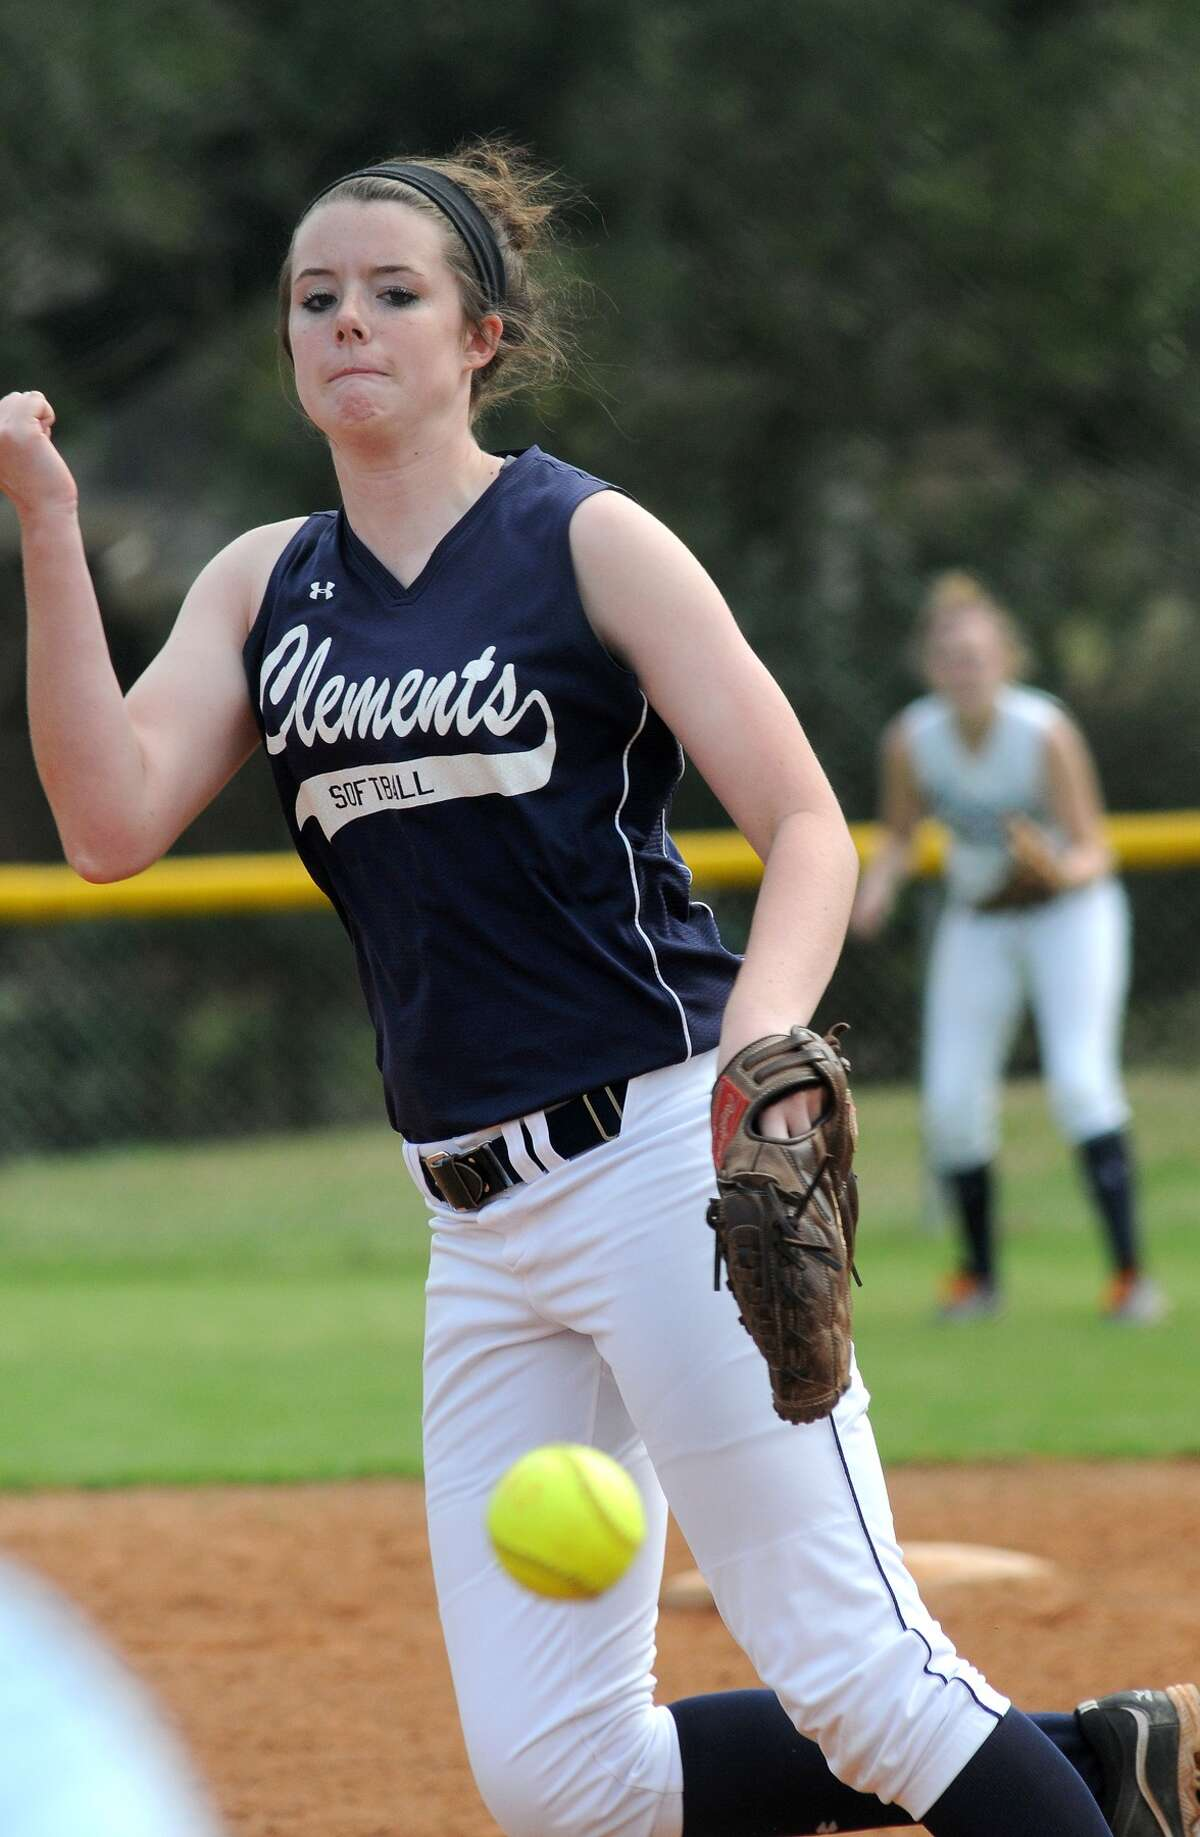 Clements pitcher Meredith Miller works to the plate against The Woodlands. Freelance photo by Jerry Baker